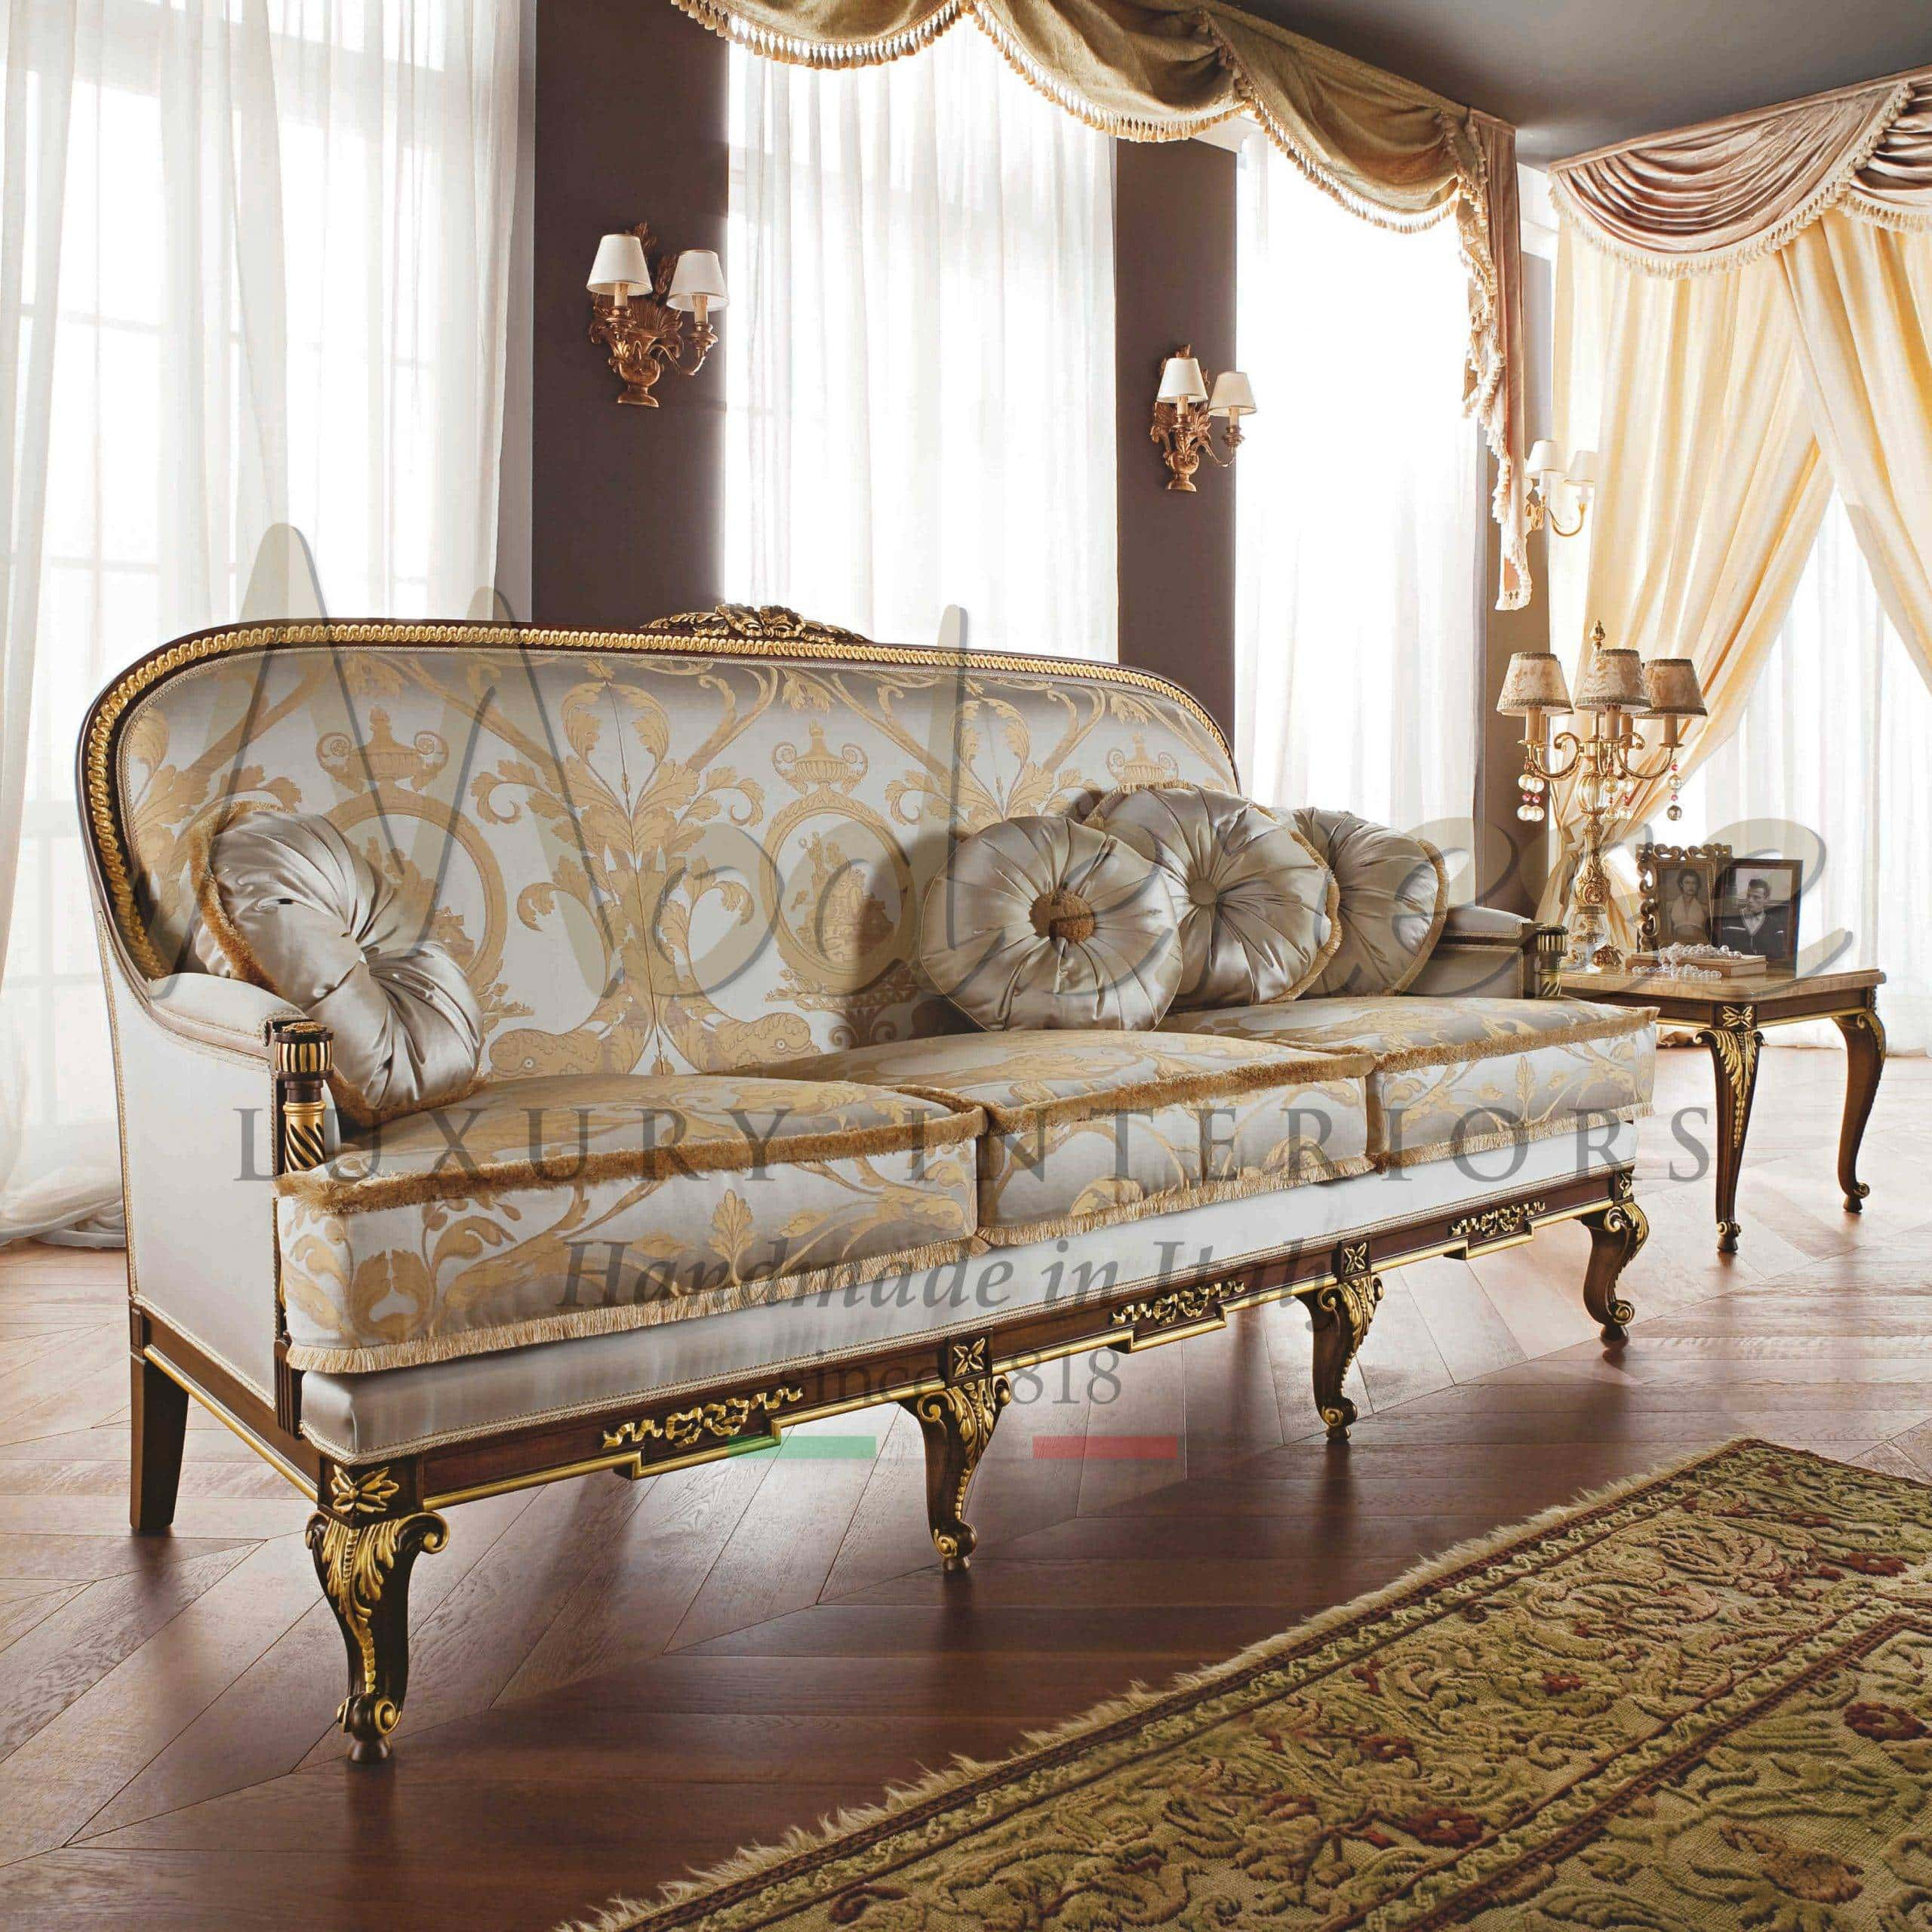 Italian Classic Style Sofas Traditional Luxury High End Artisanal Exclusive Handmade Production Modenese